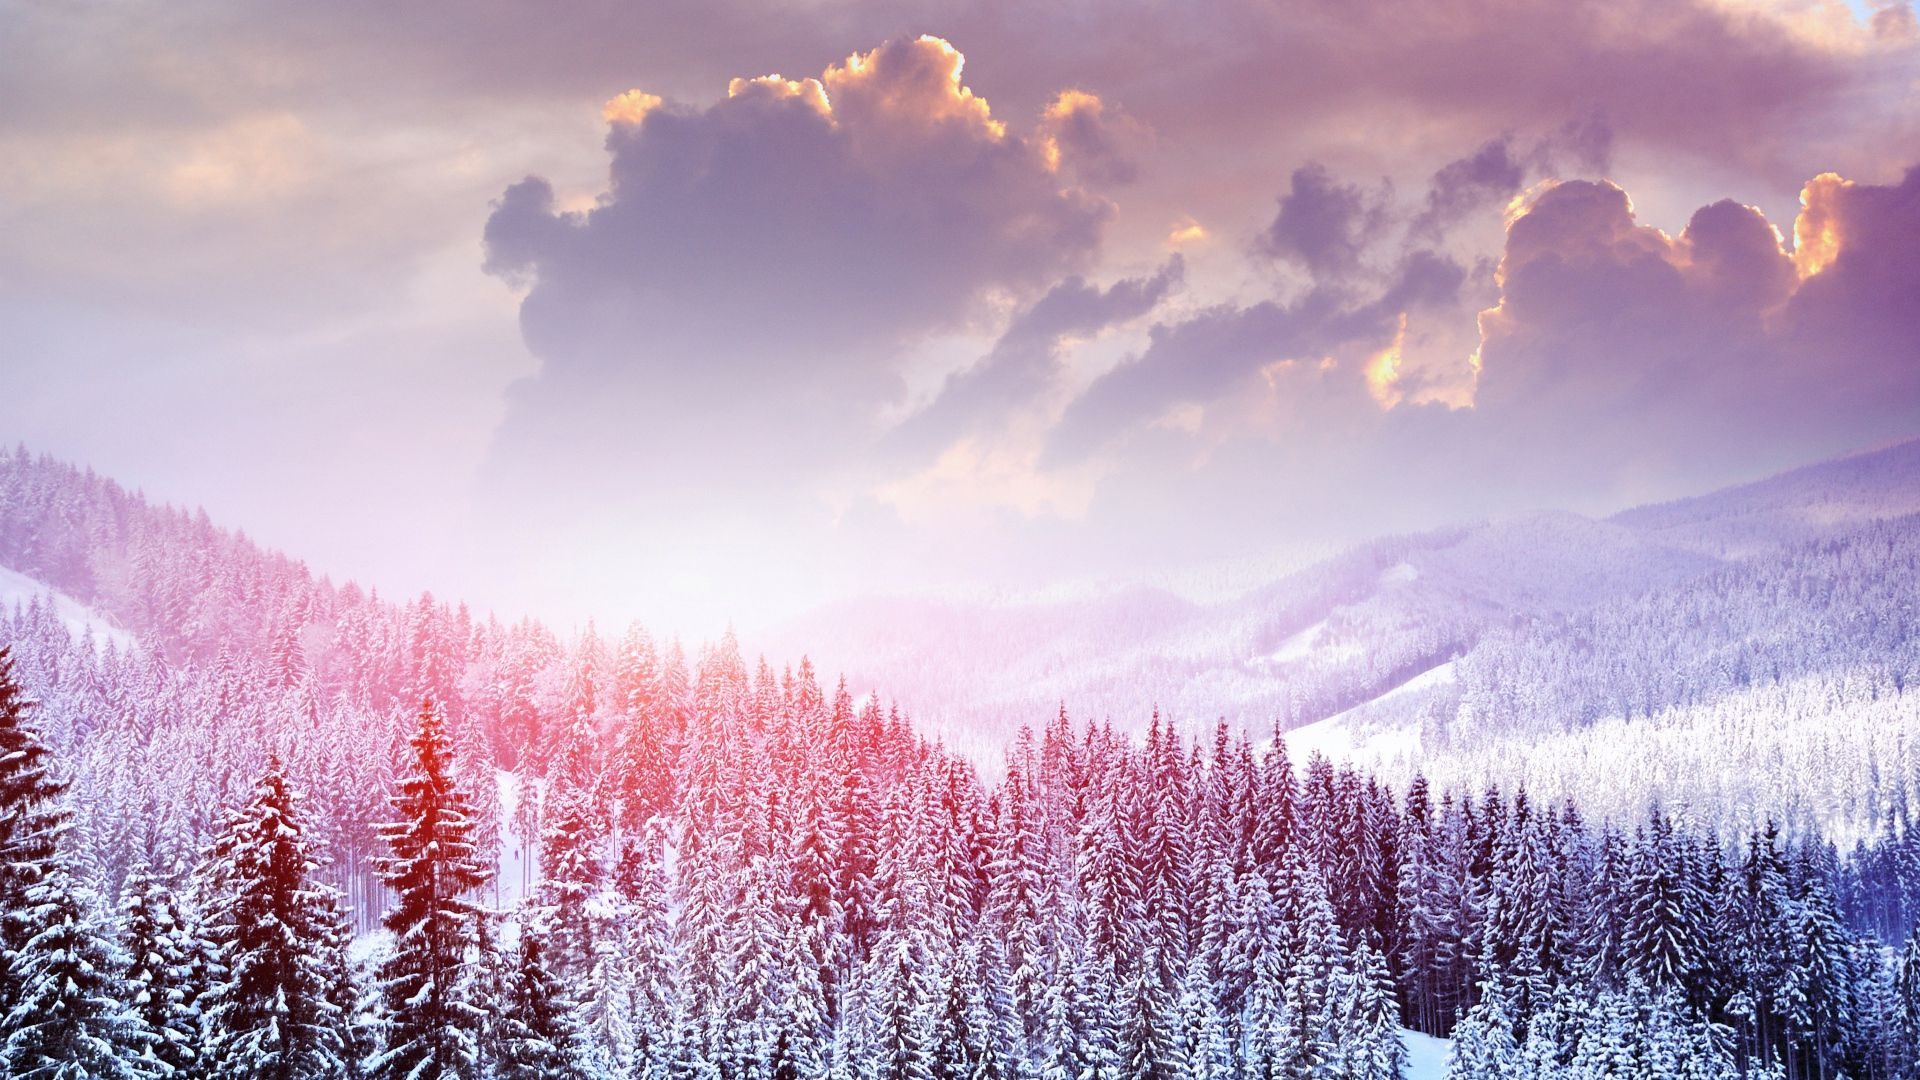 1920x1080 Wallpaper Landscape Winter Snow Trees Mountains Forest Sky Clouds Winter Wallpaper Iphone Wallpaper Winter Nature Wallpaper